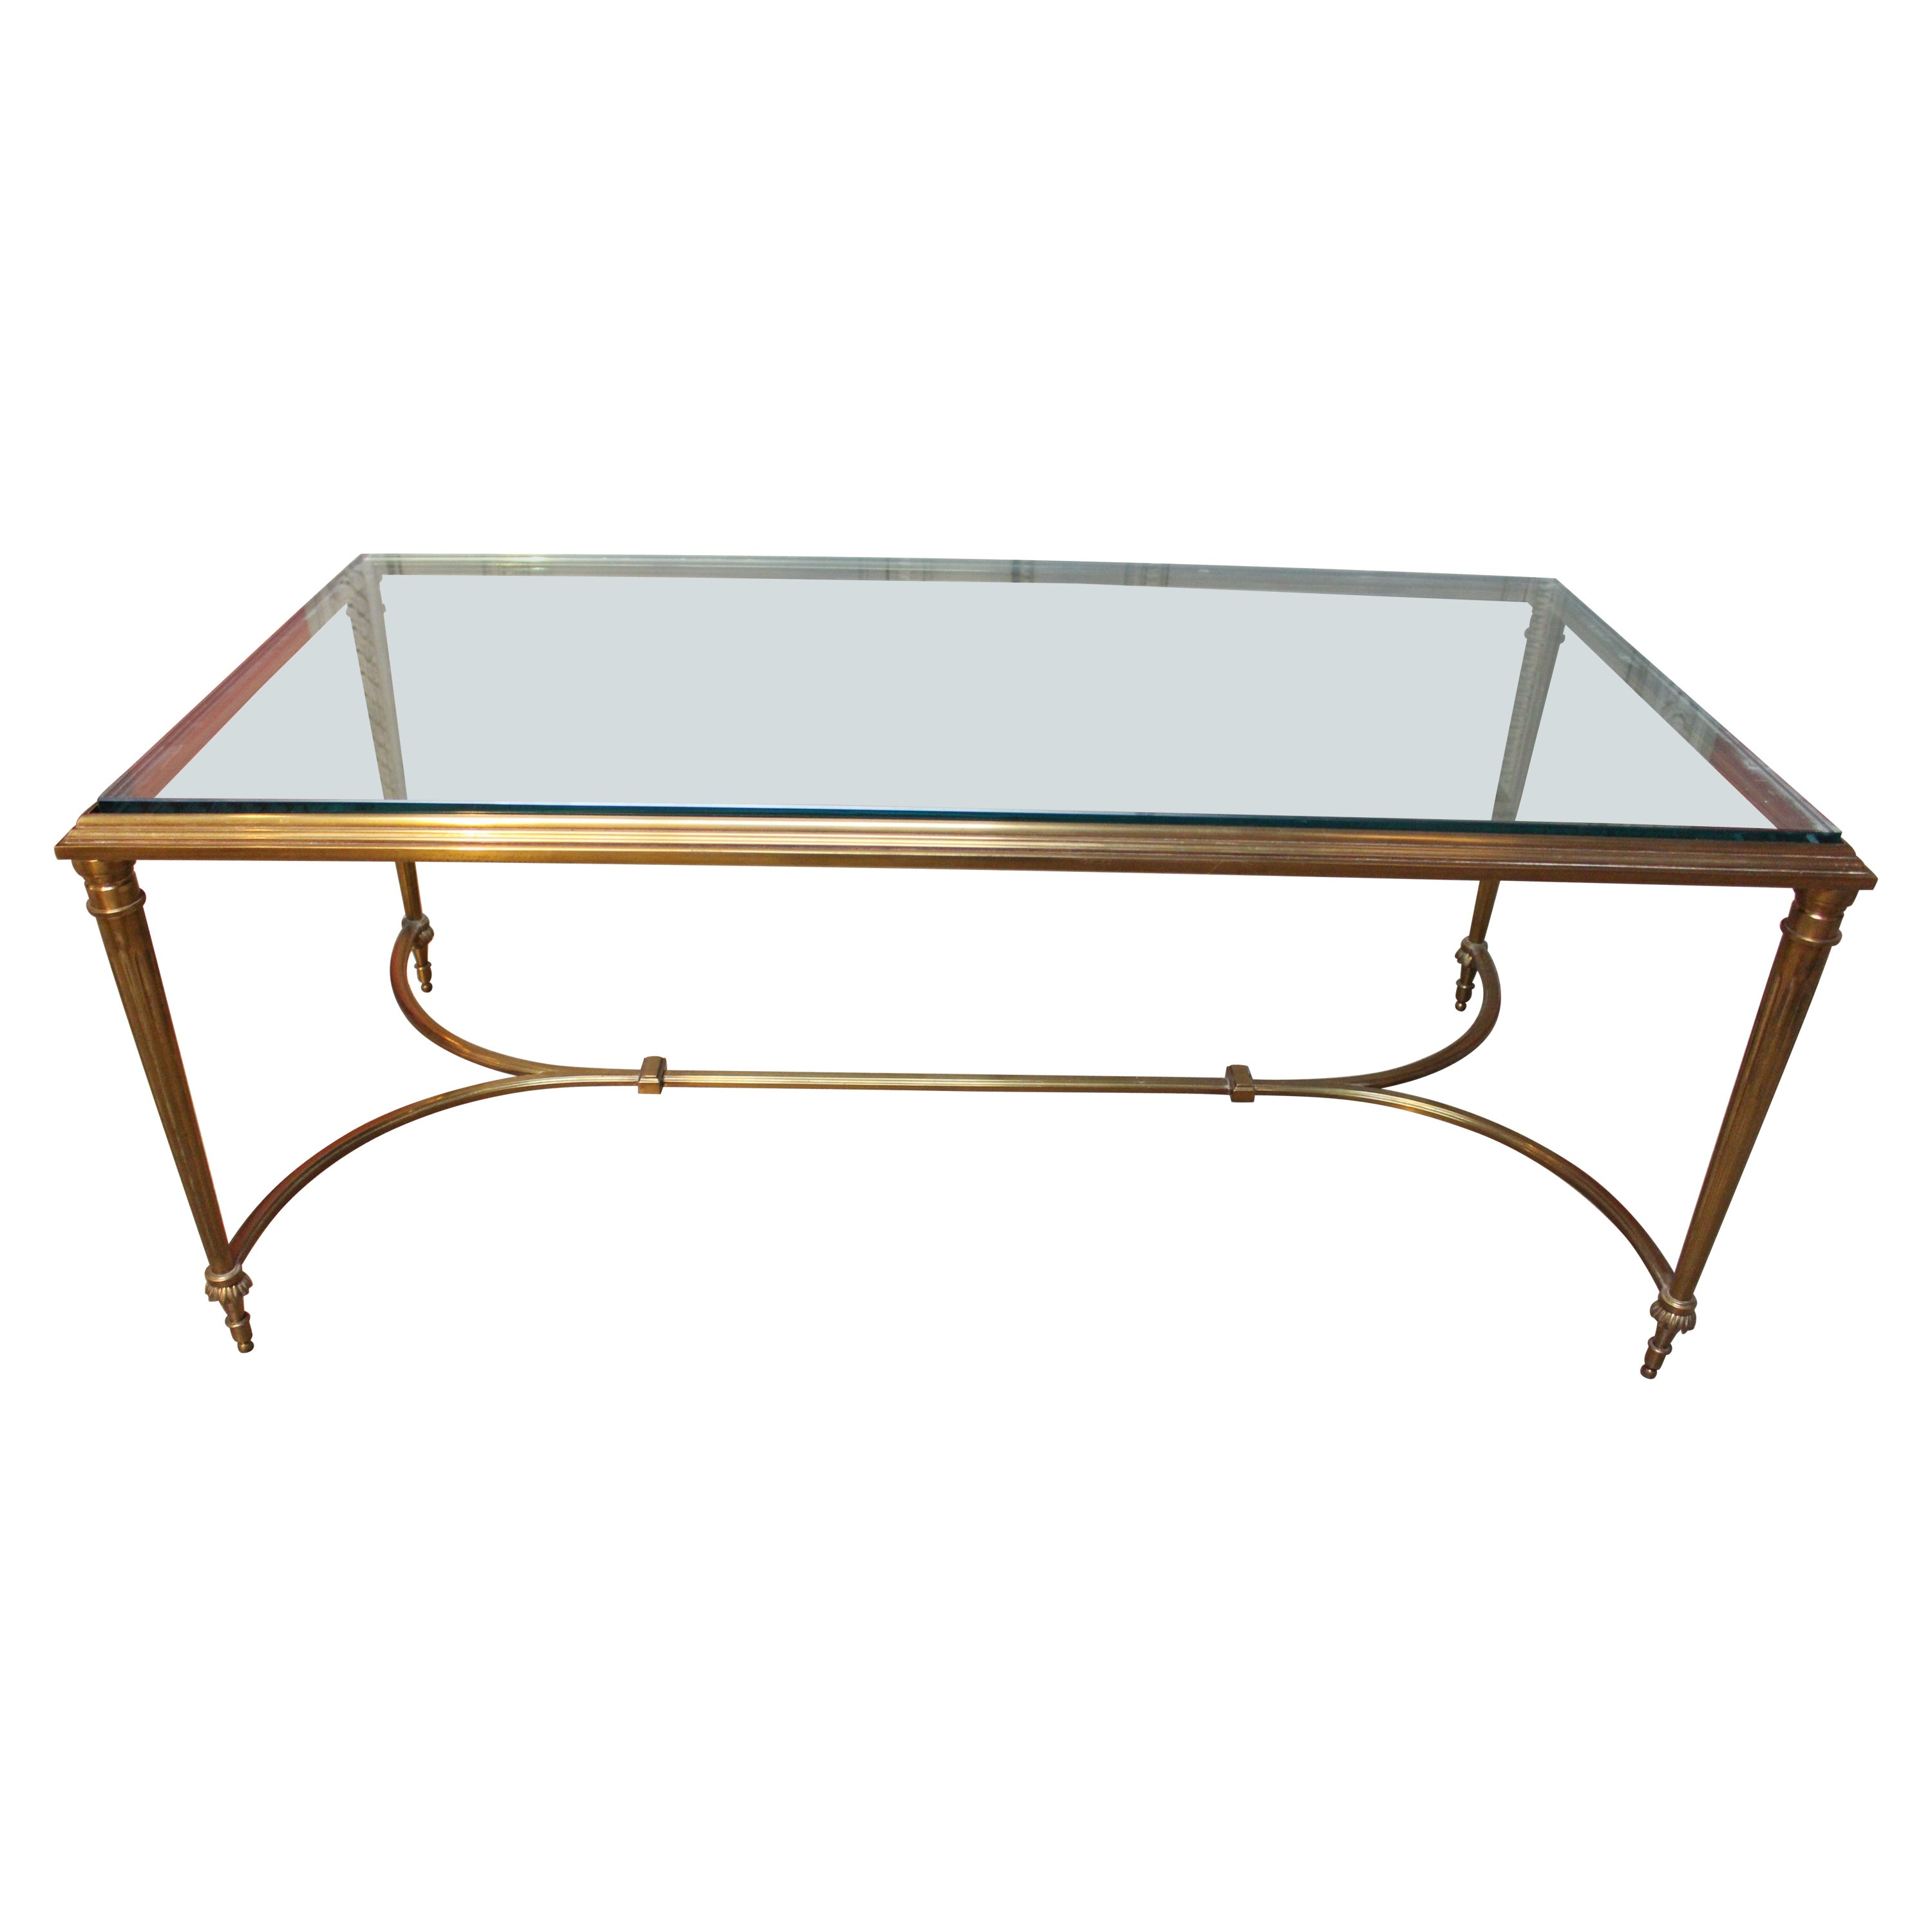 Louis XVI Style Brass Cocktail Table with Glass Top